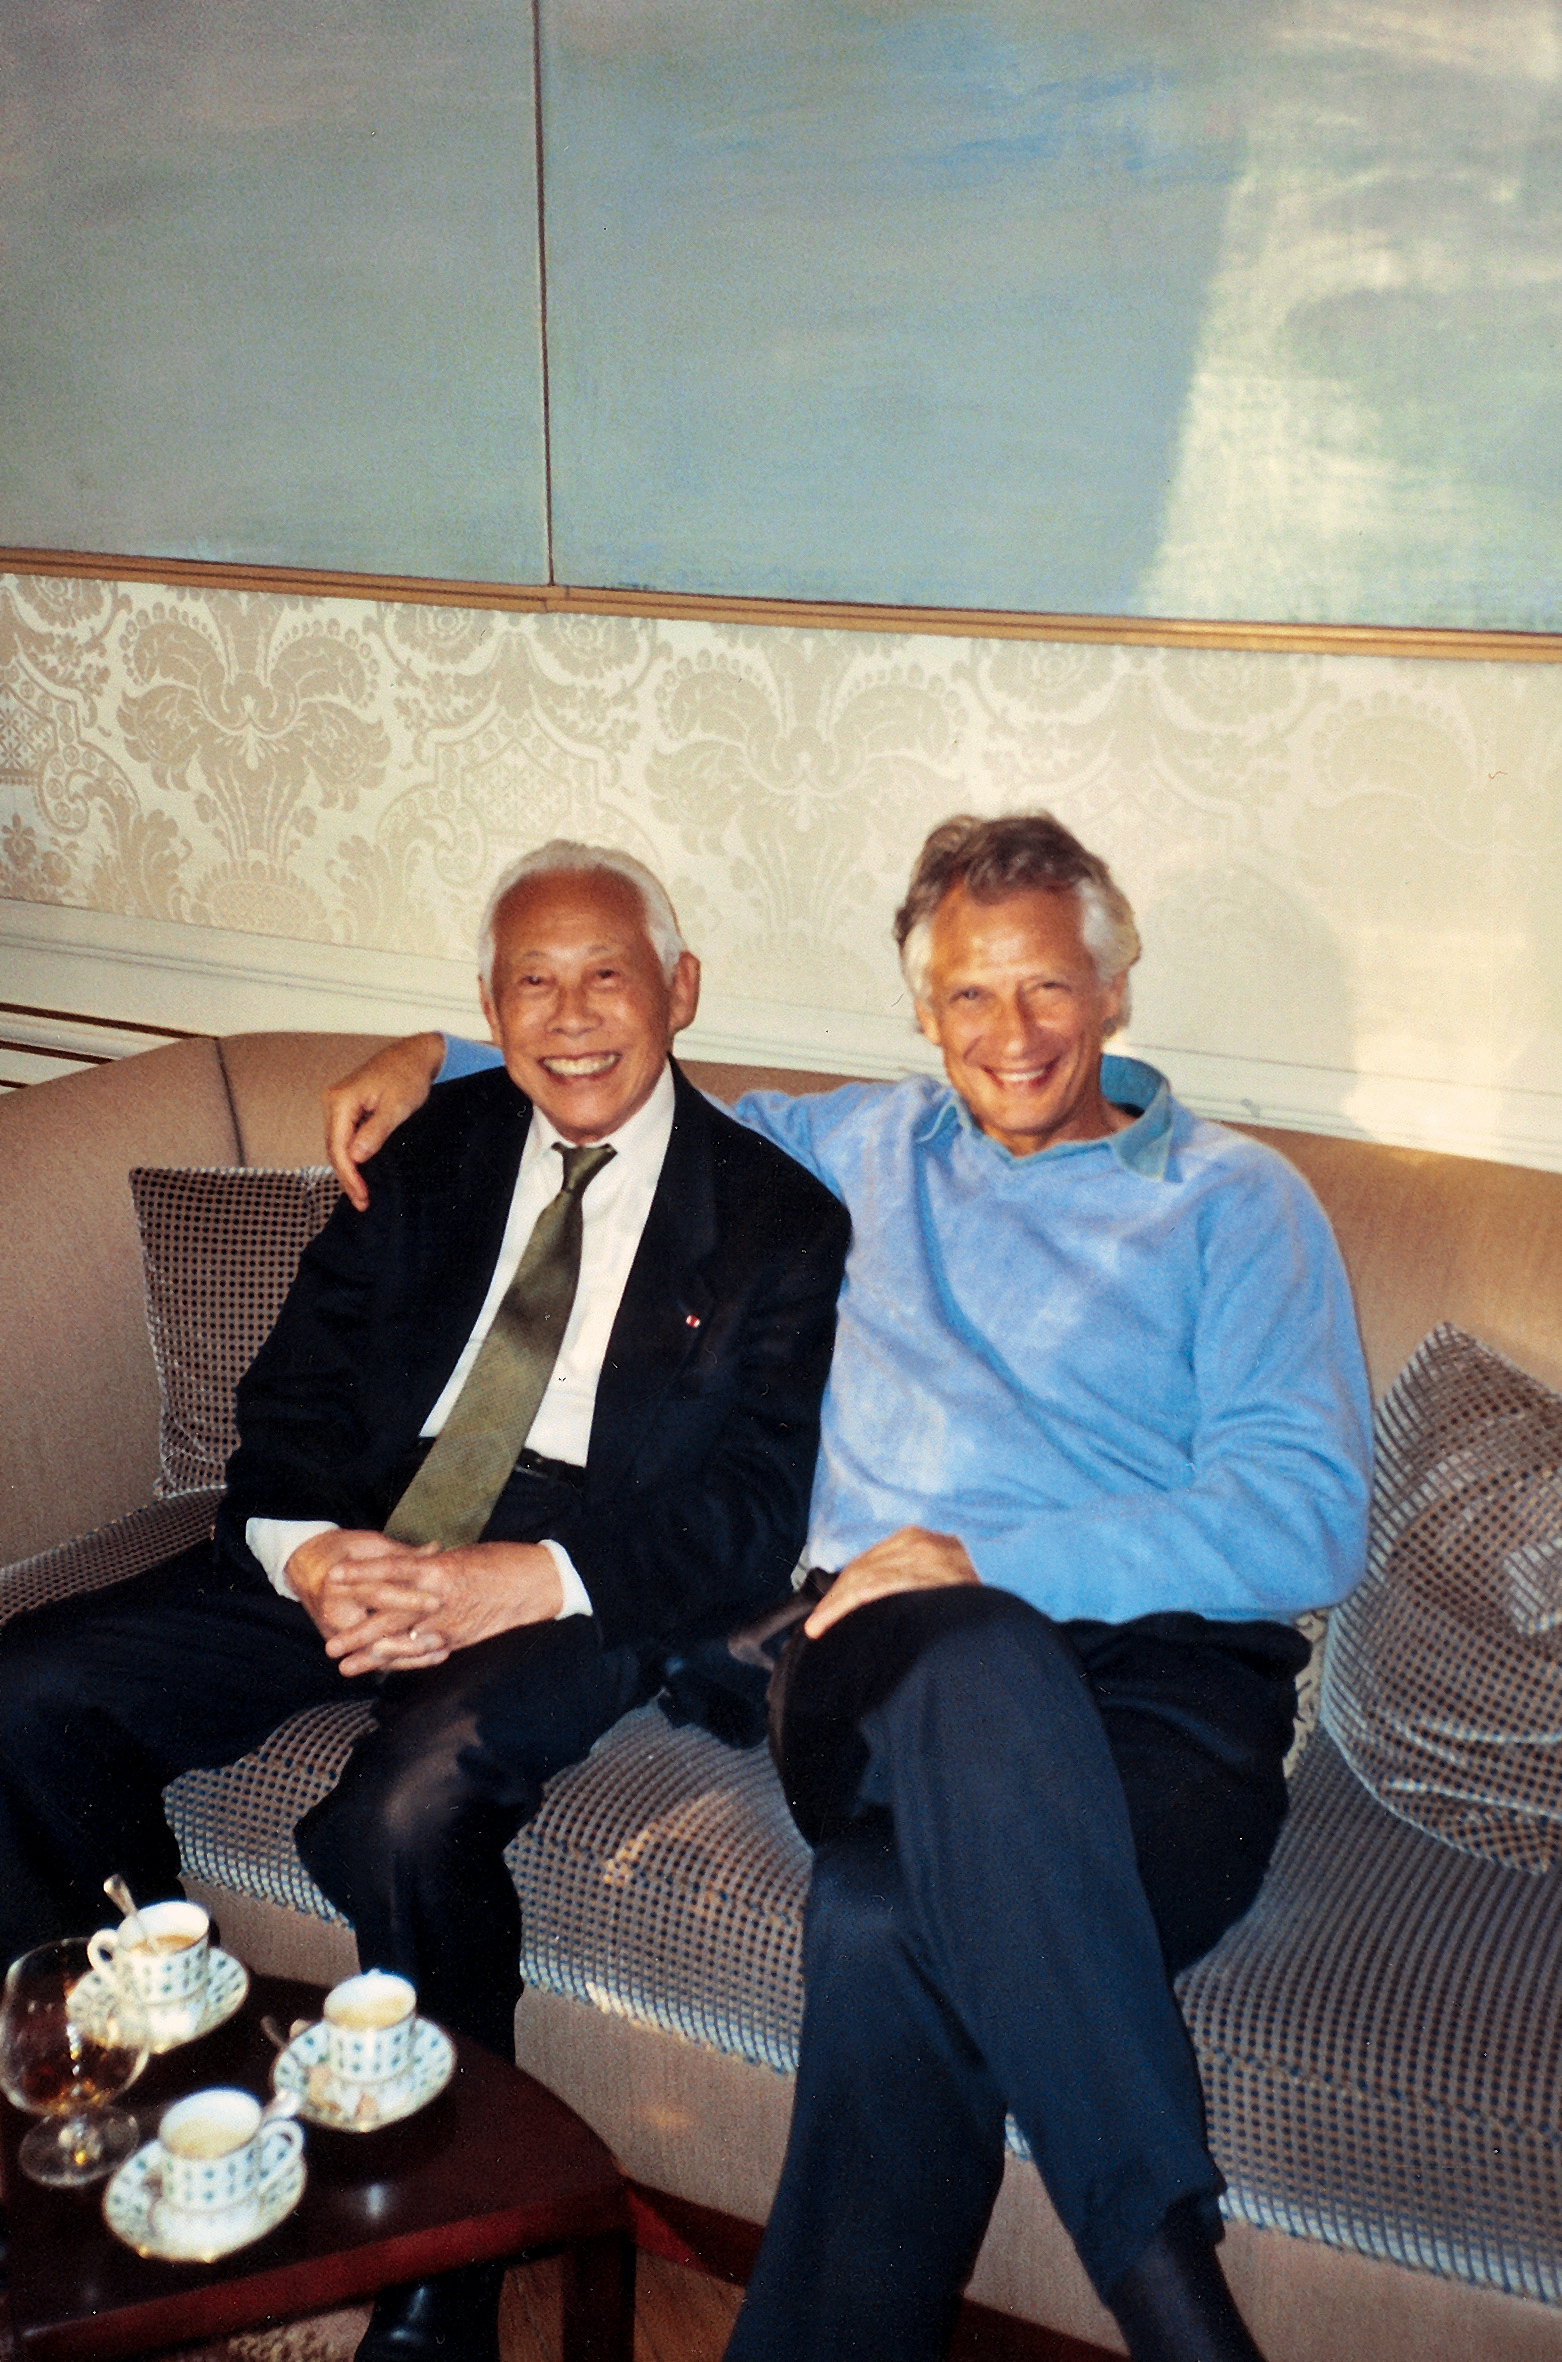 With Dominique de Villepin at the Hôtel Matignon, 2005. All rights reserved